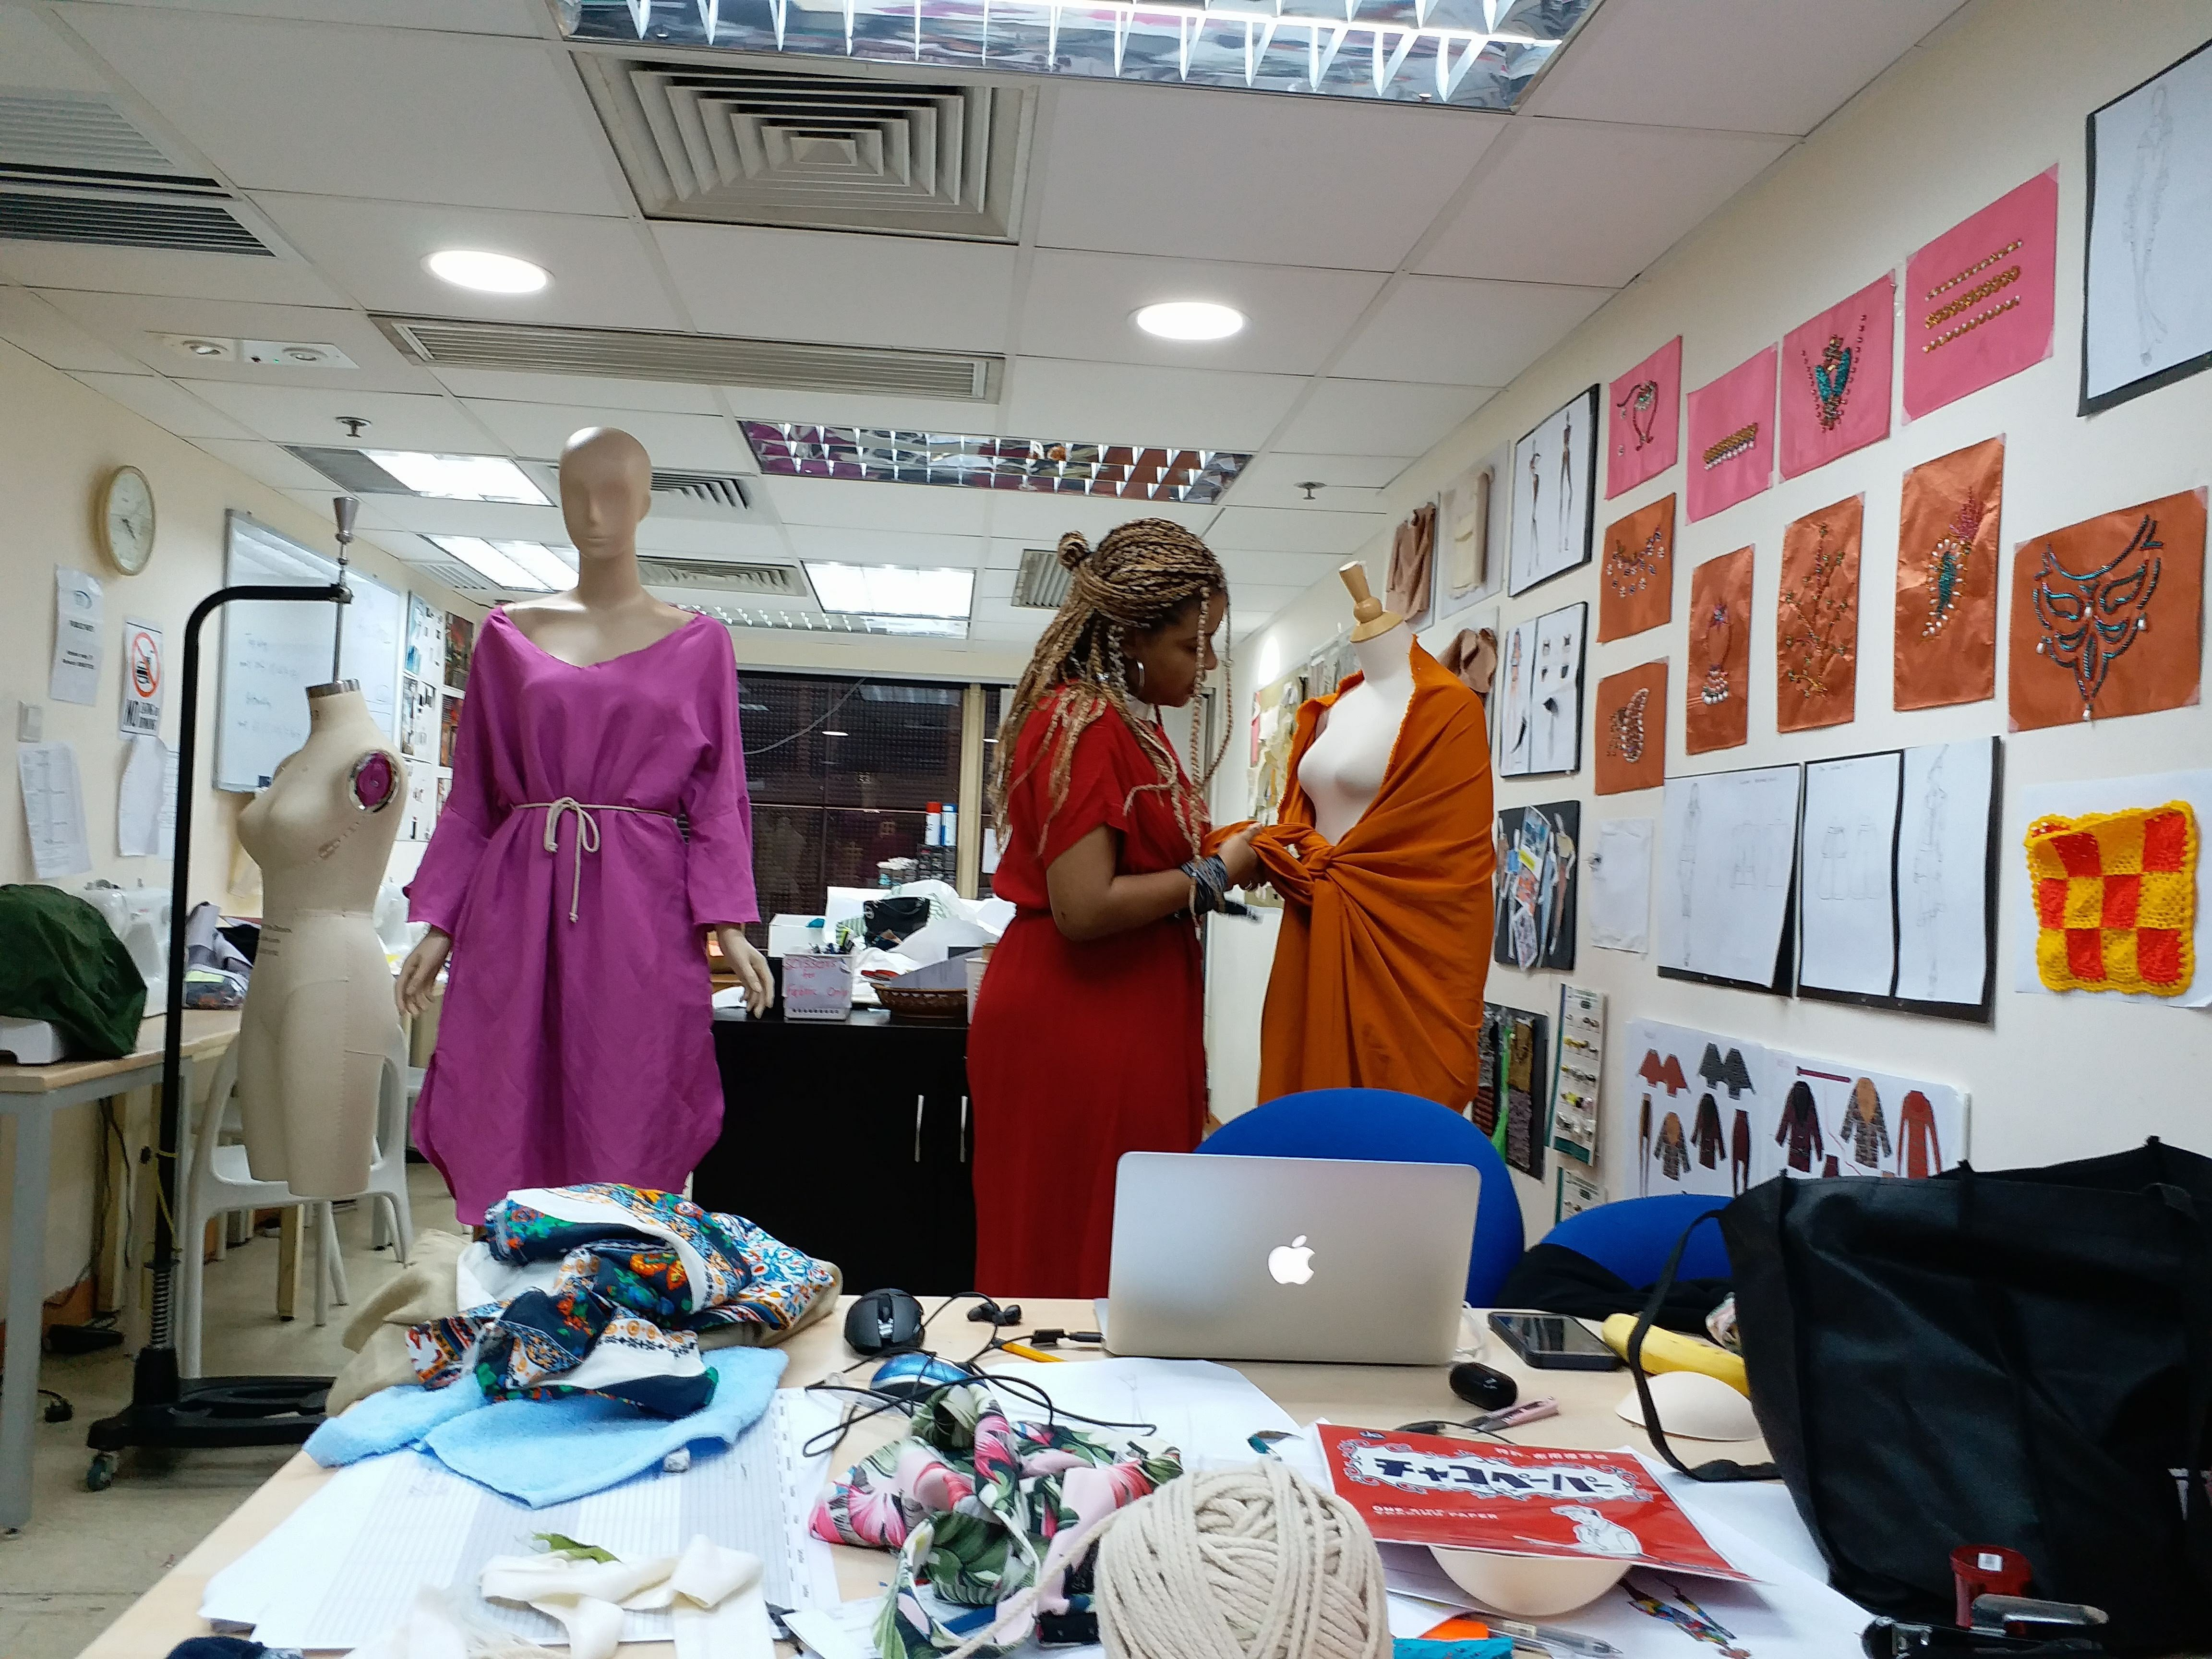 Dressmaking Sewing And Fashion Design Classes In Hong Kong